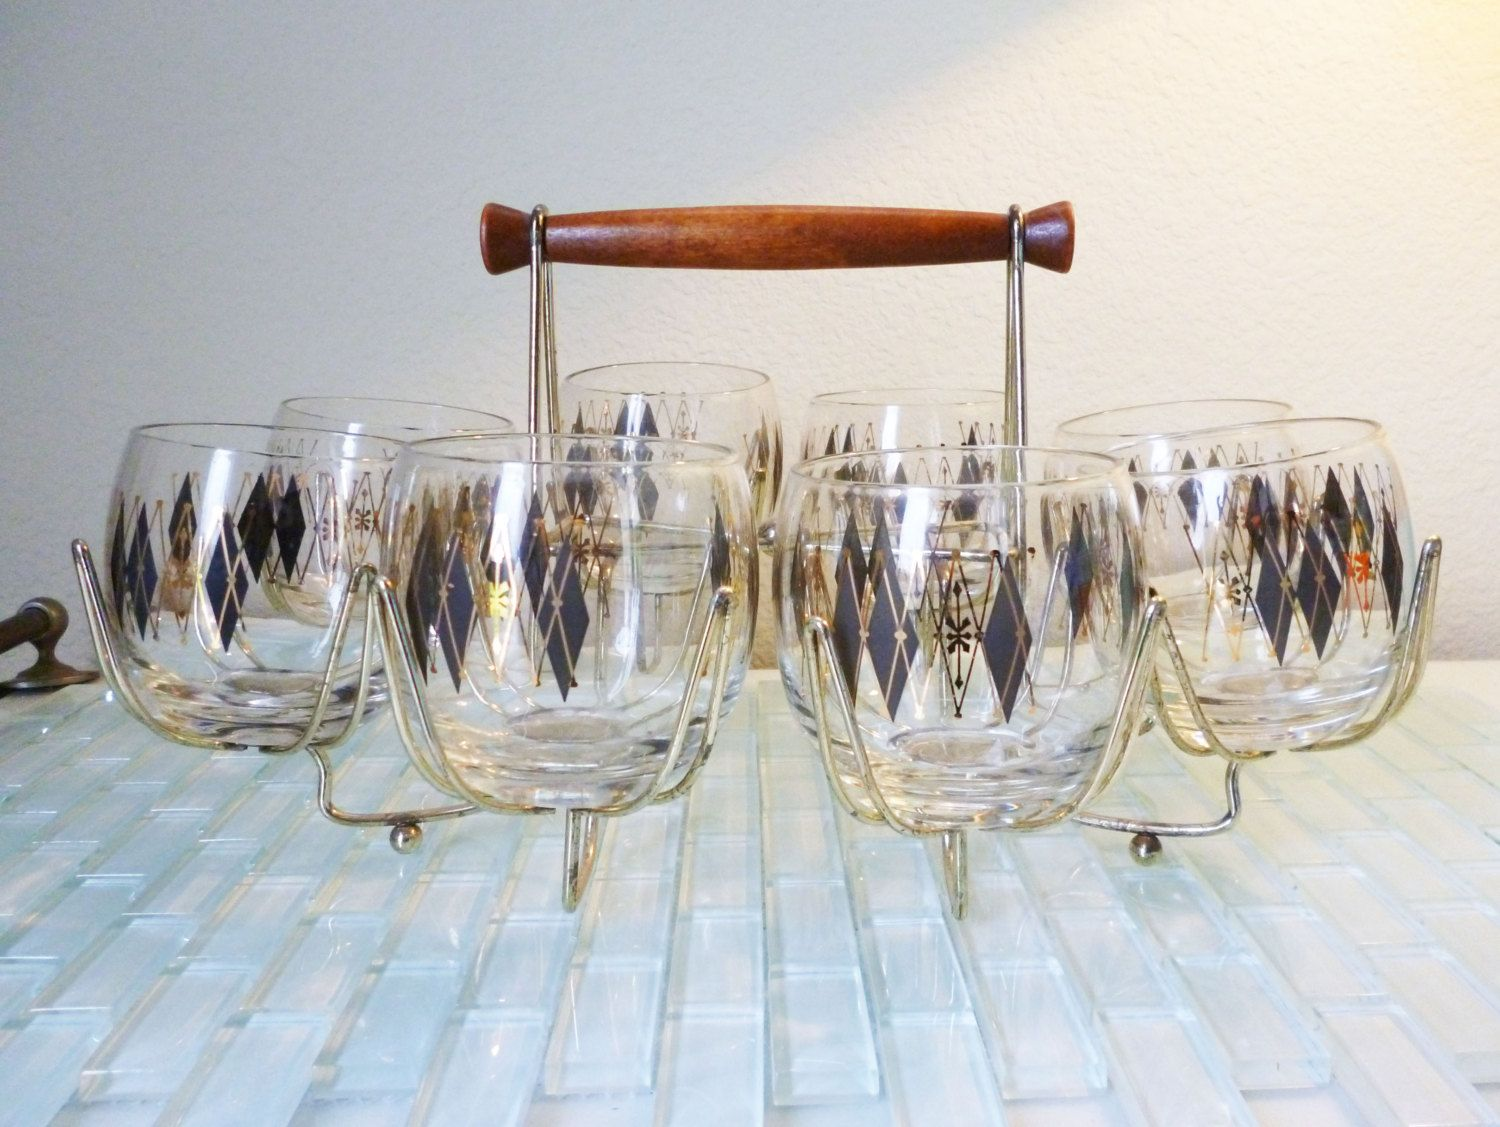 Vintage Mod Atomic Federal Barware Set 8 Glasses With Caddy Diamonds Black  Gold Mad Men Roly